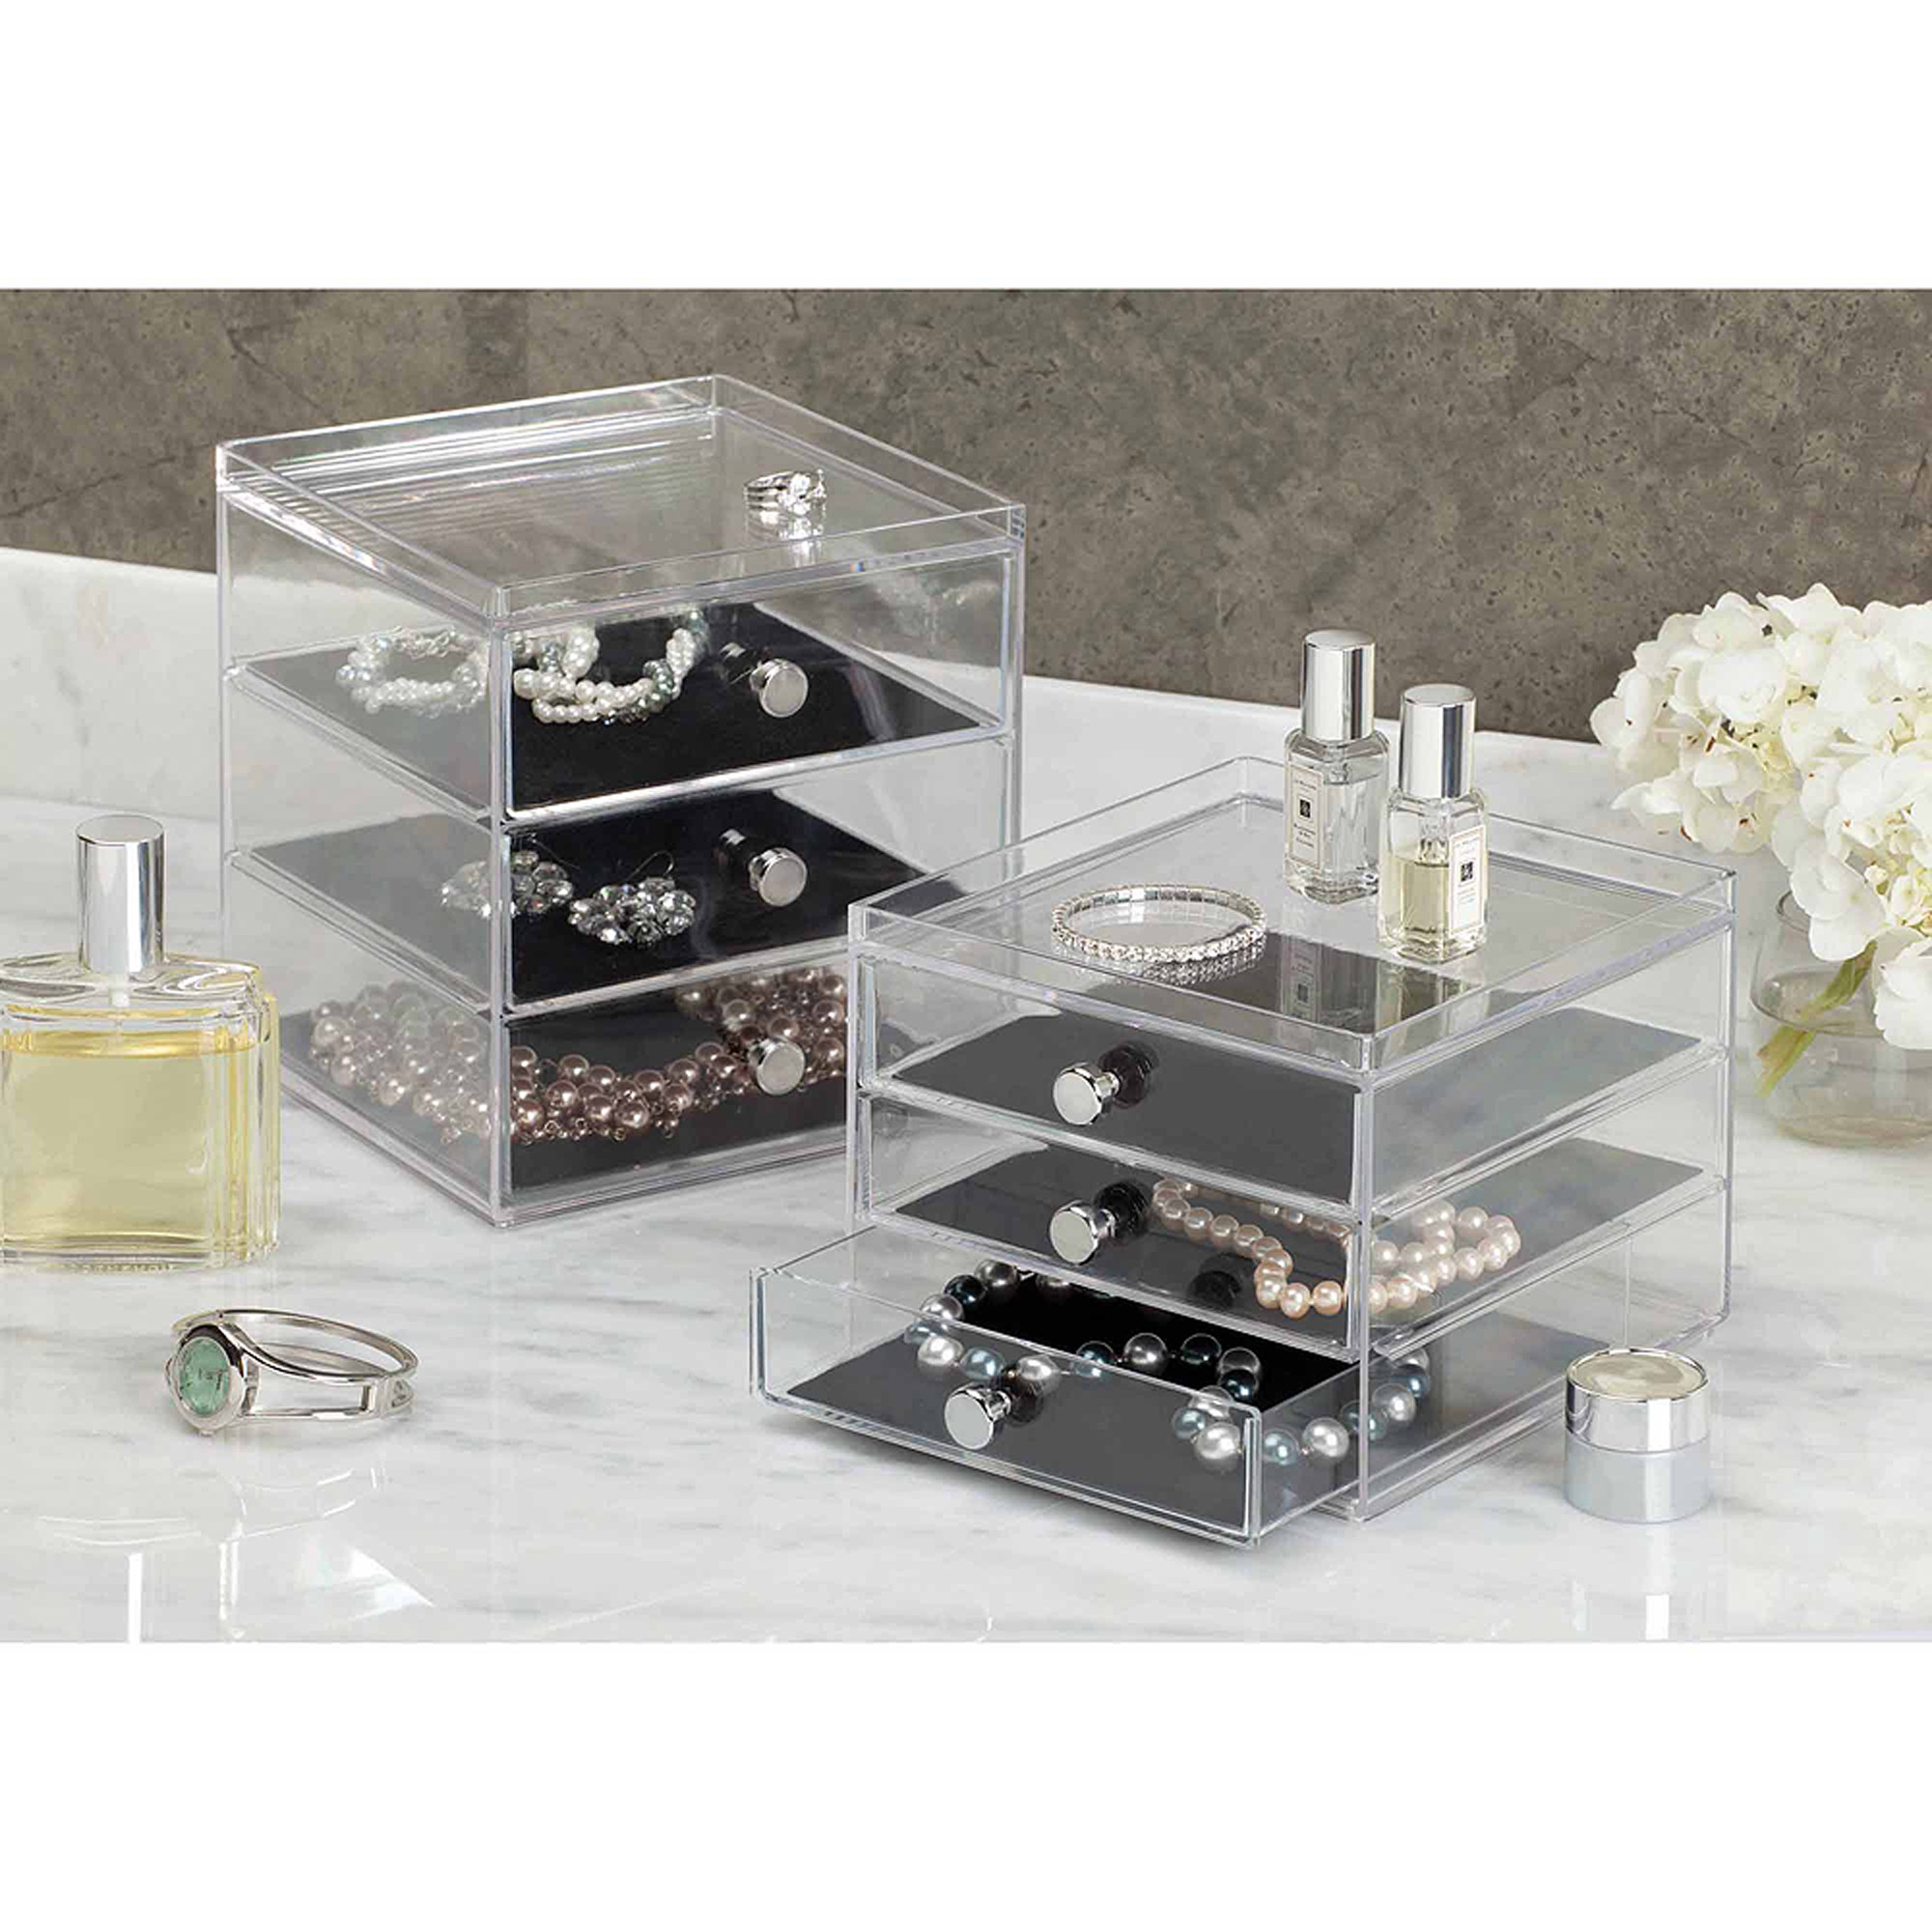 InterDesign Clarity Fashion Jewelry Organizer for Rings Earrings